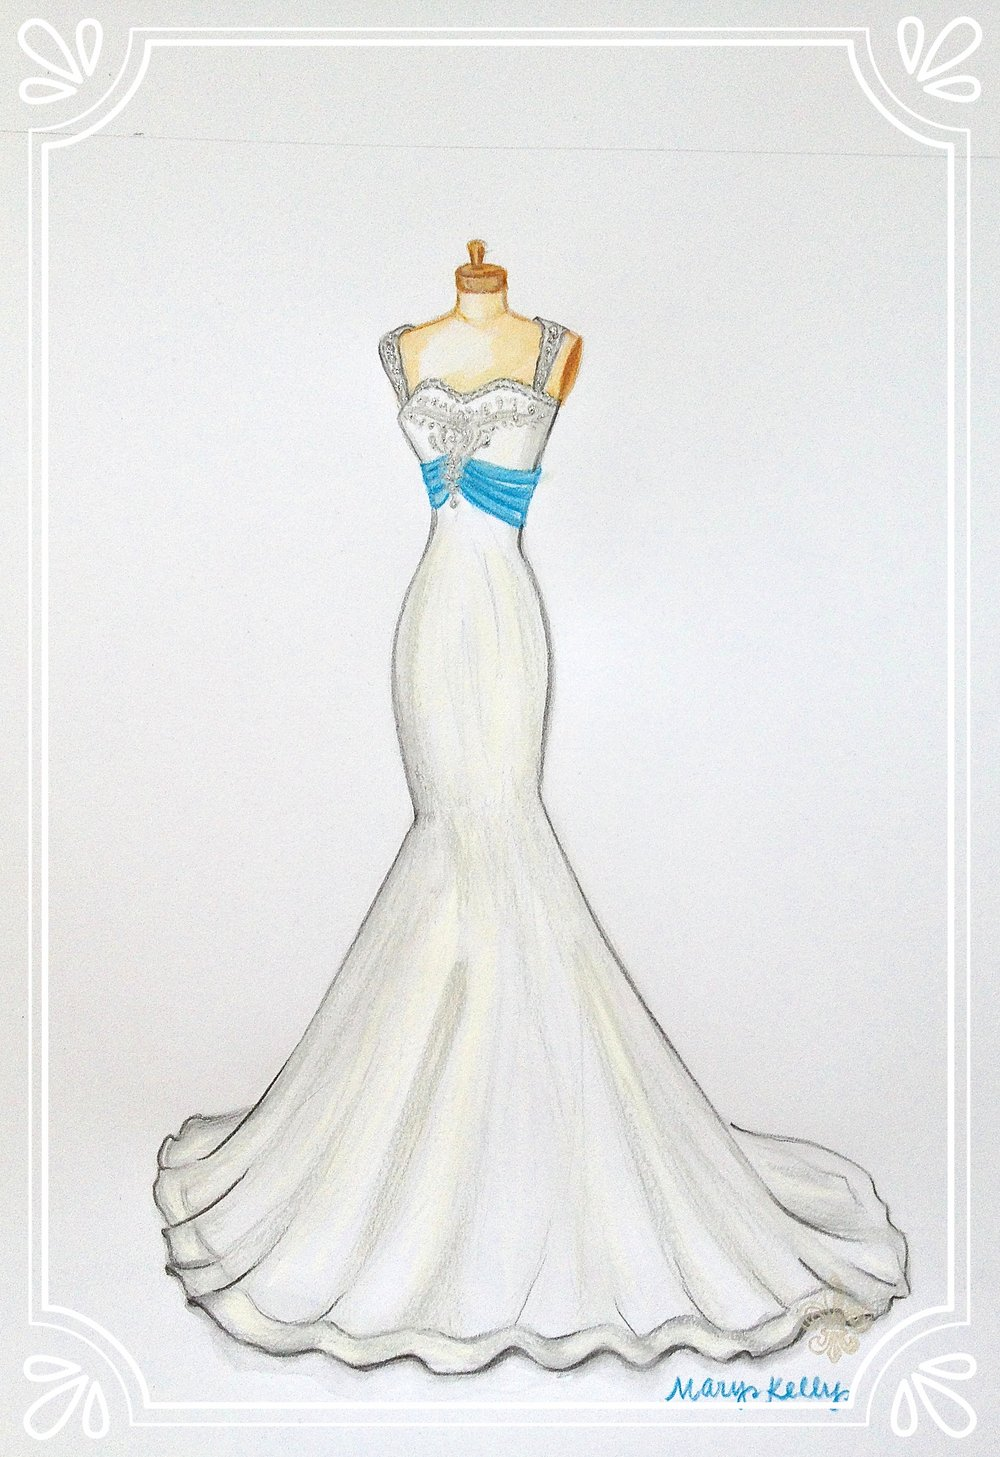 gown with blue sash